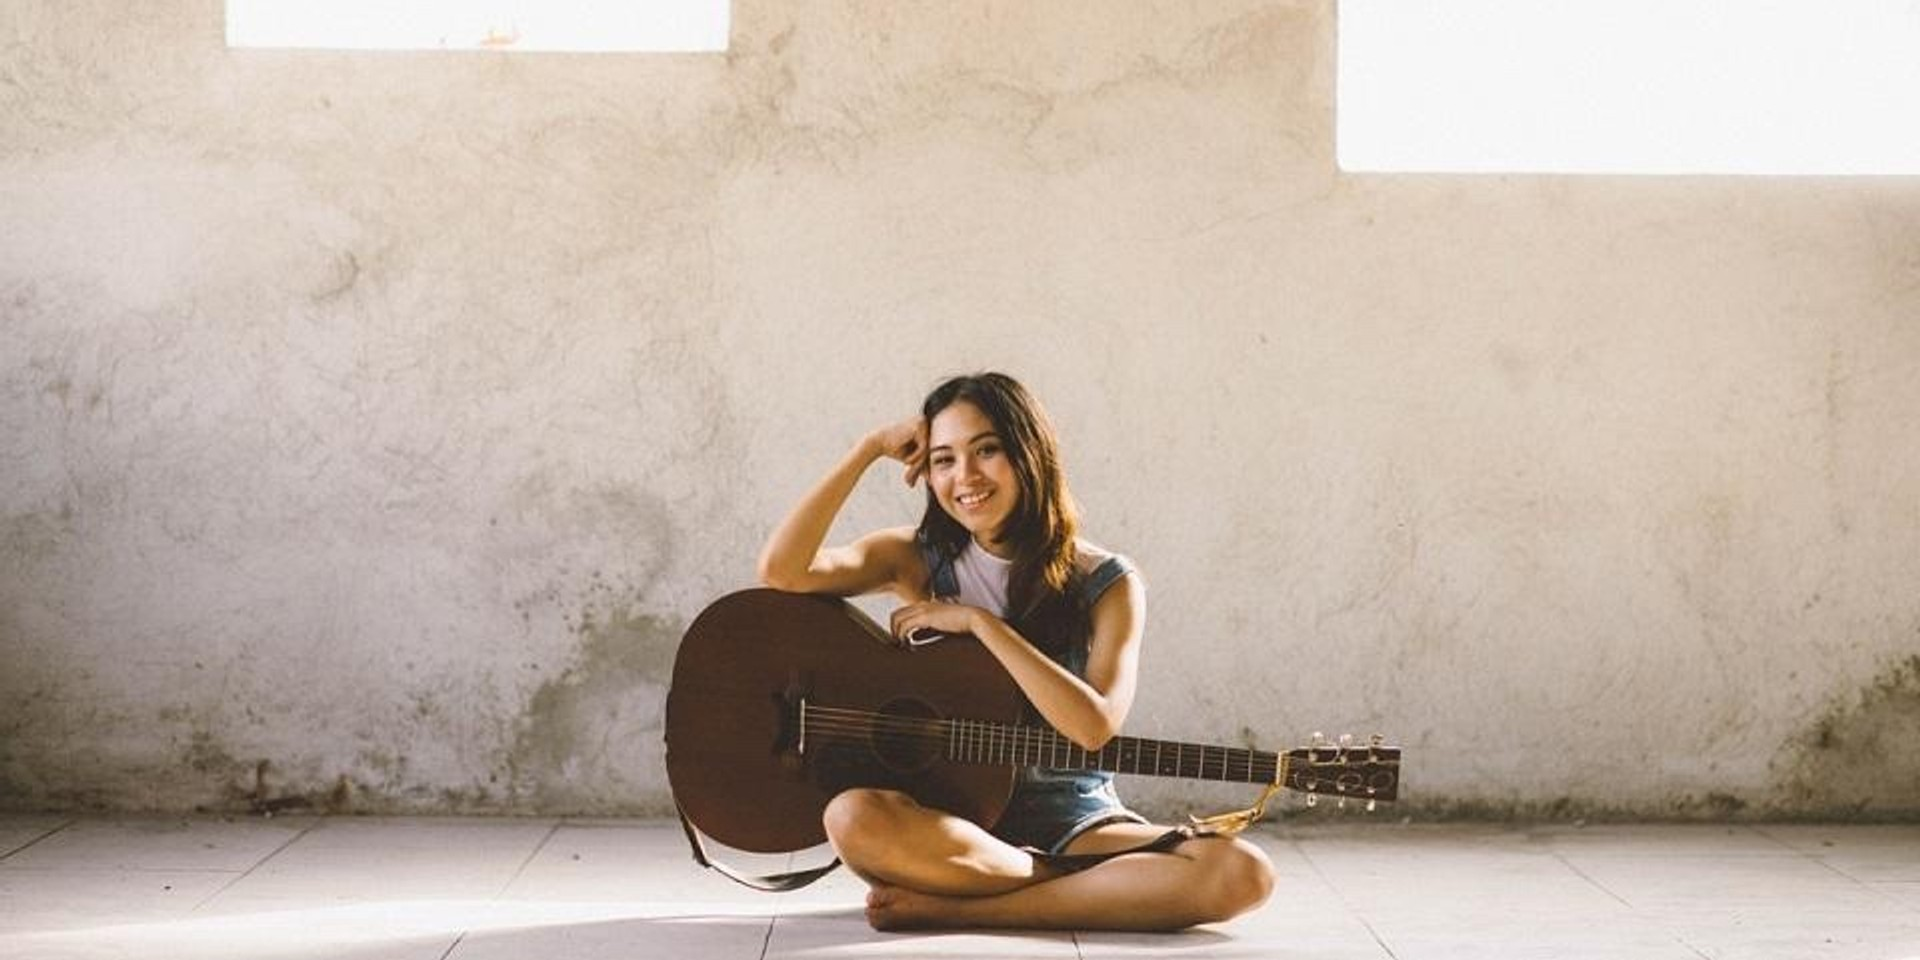 Clara Benin releases new track, 'Parallel Universe', stream it on Spotify